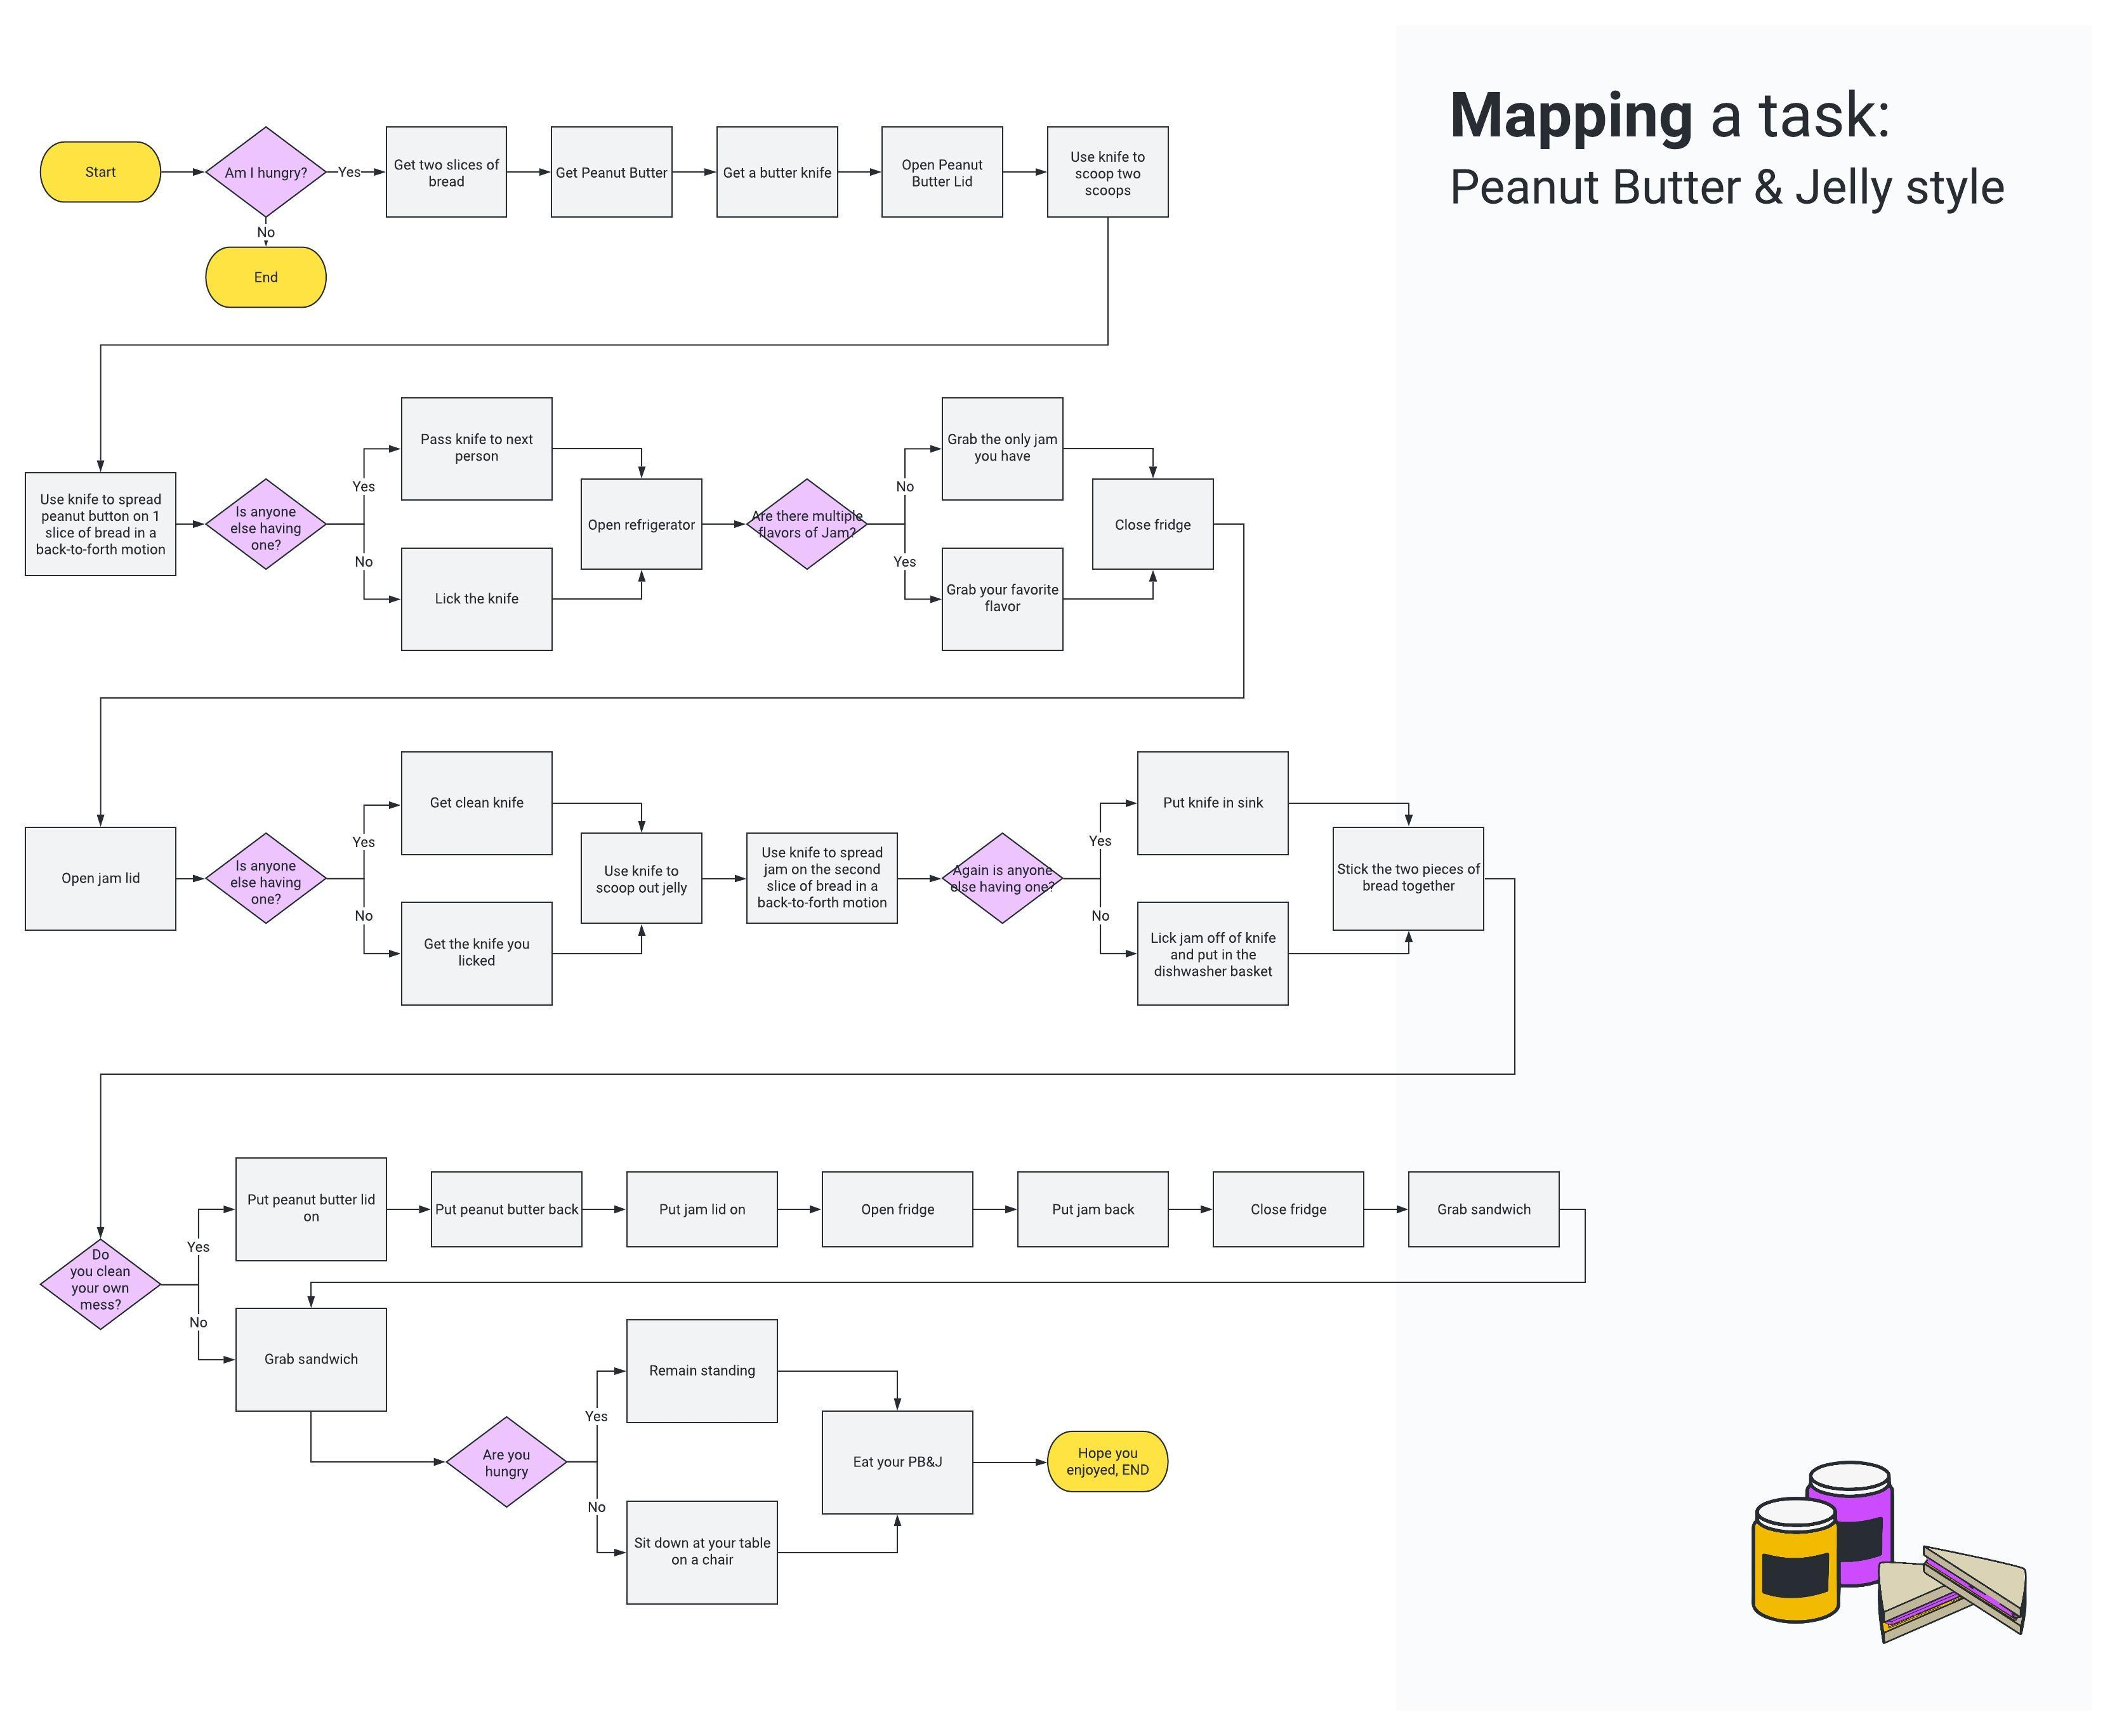 Mapping a task